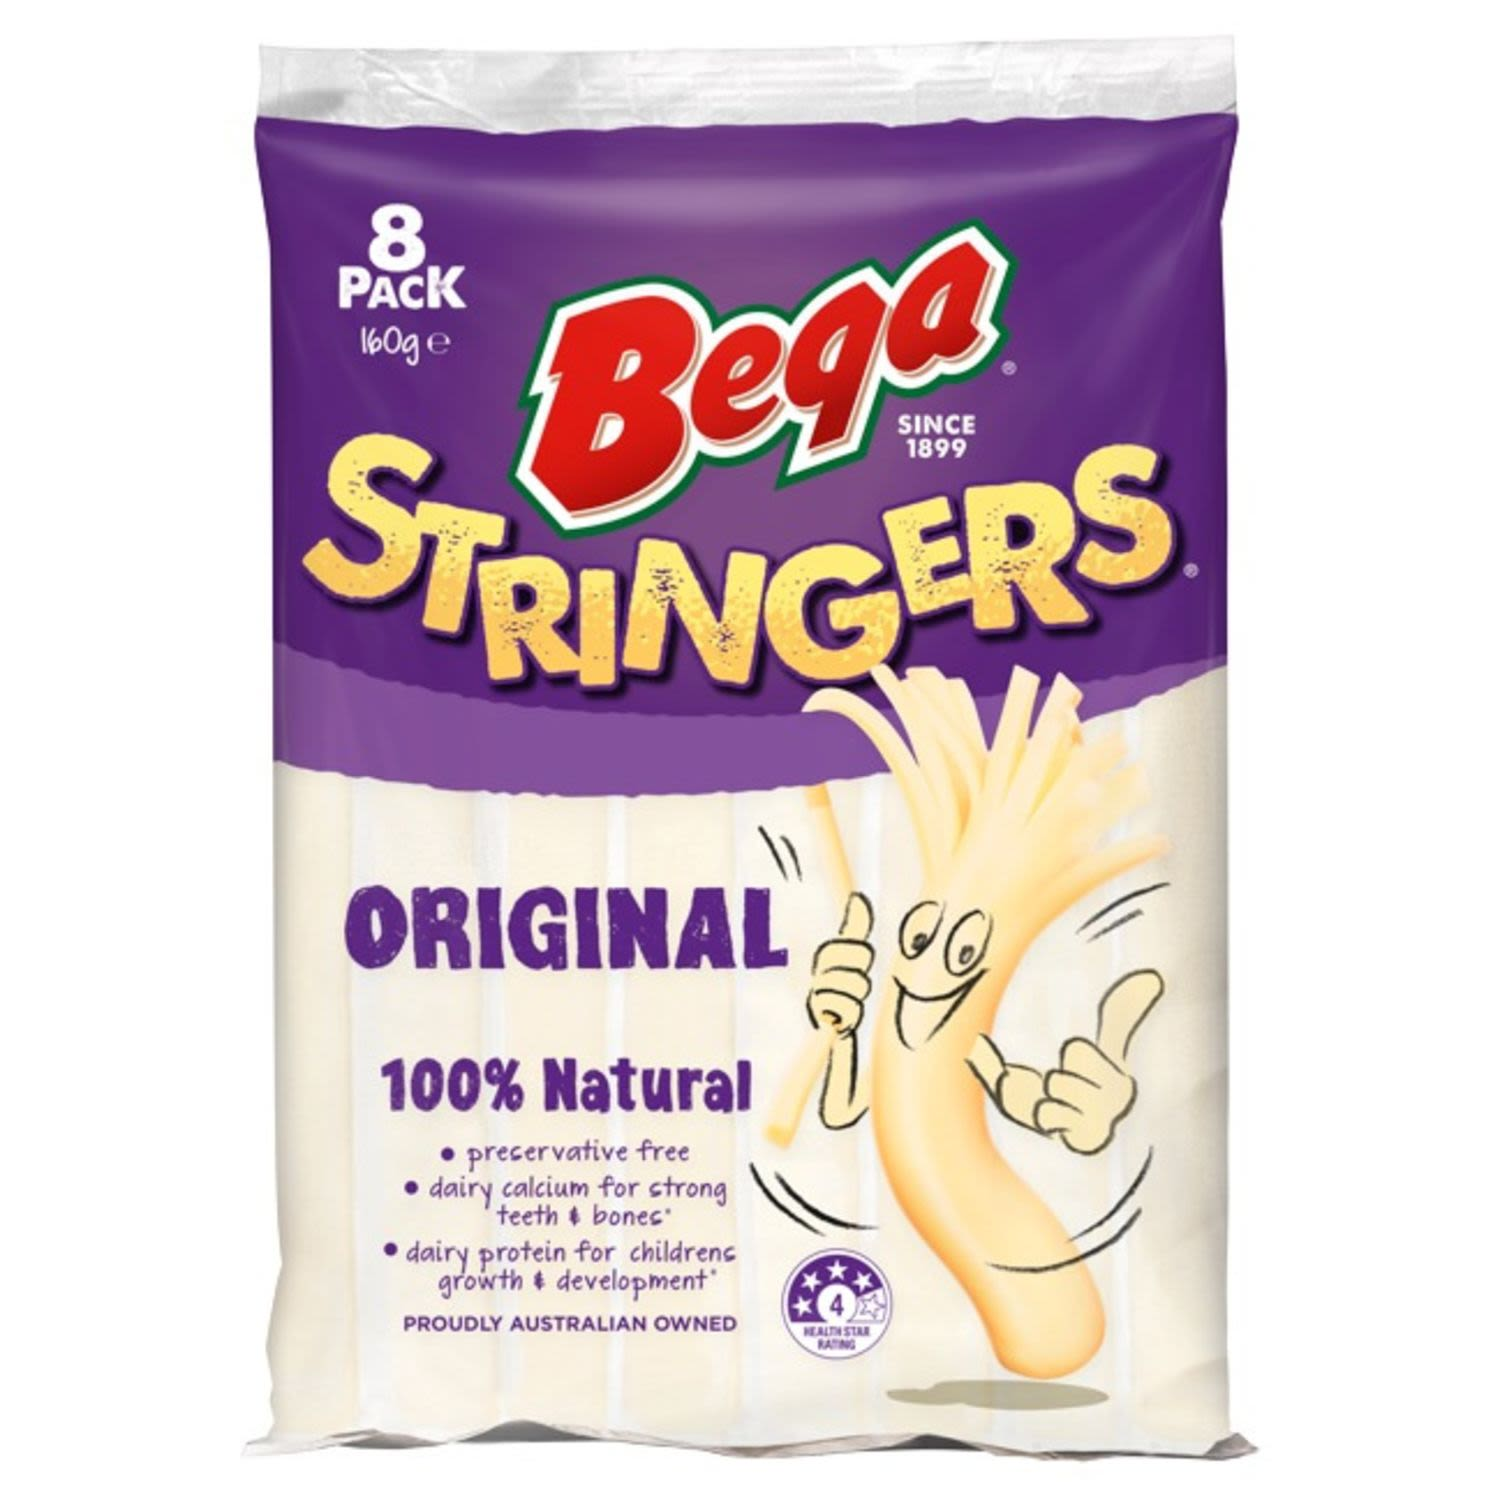 What makes Bega...Bega?  Over 100 years of dairying heritage resulting in the unique taste you know and love. - 5 Natural ingredients. - Easy for kids to open. - Fun to string & eat. - Proudly Australian Owned. - No artificial colours or flavours. 100% natural. - preservative free. - Dairy protein for children's growth & development (As part of a healthy eating plan combined with regular physical activity).  -Dairy protein for strong teeth & bones (As part of a healthy eating plan combined with regular physical activity).